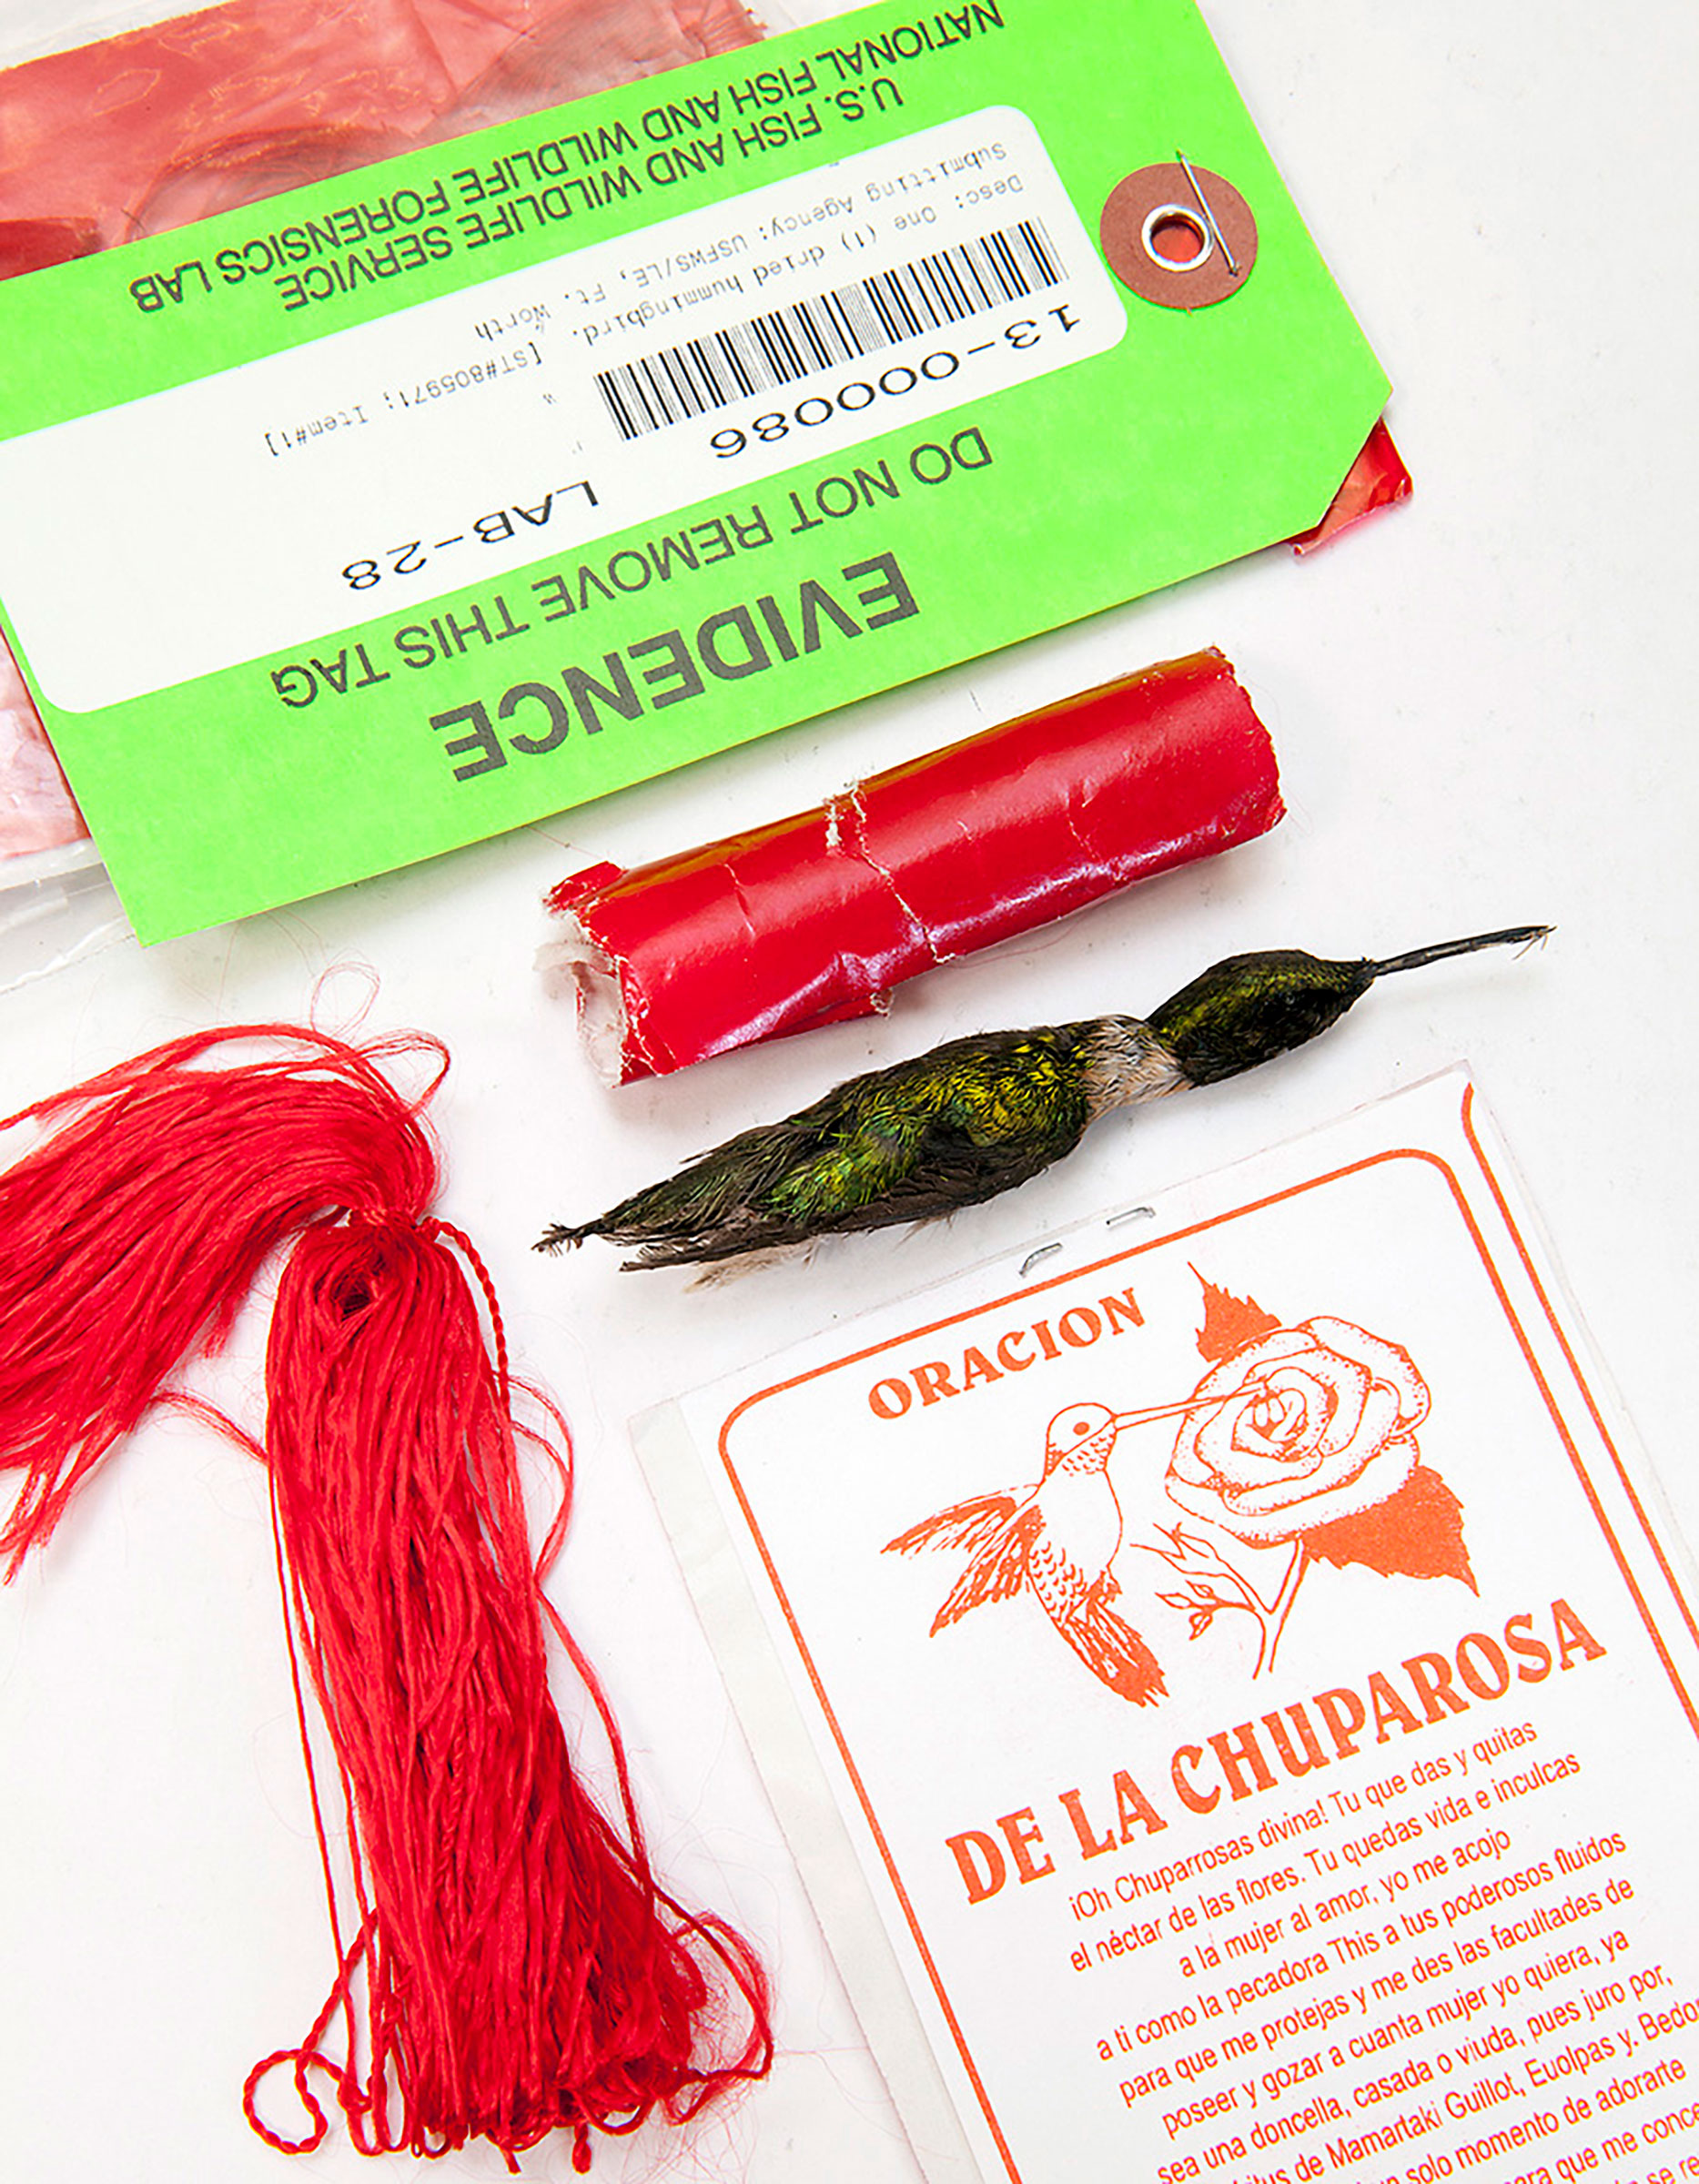 This chuparosa, seized in a sting operation, was packaged with the Prayer of the Hummingbird, a plea to bring the recipient love. Tom Fowlks